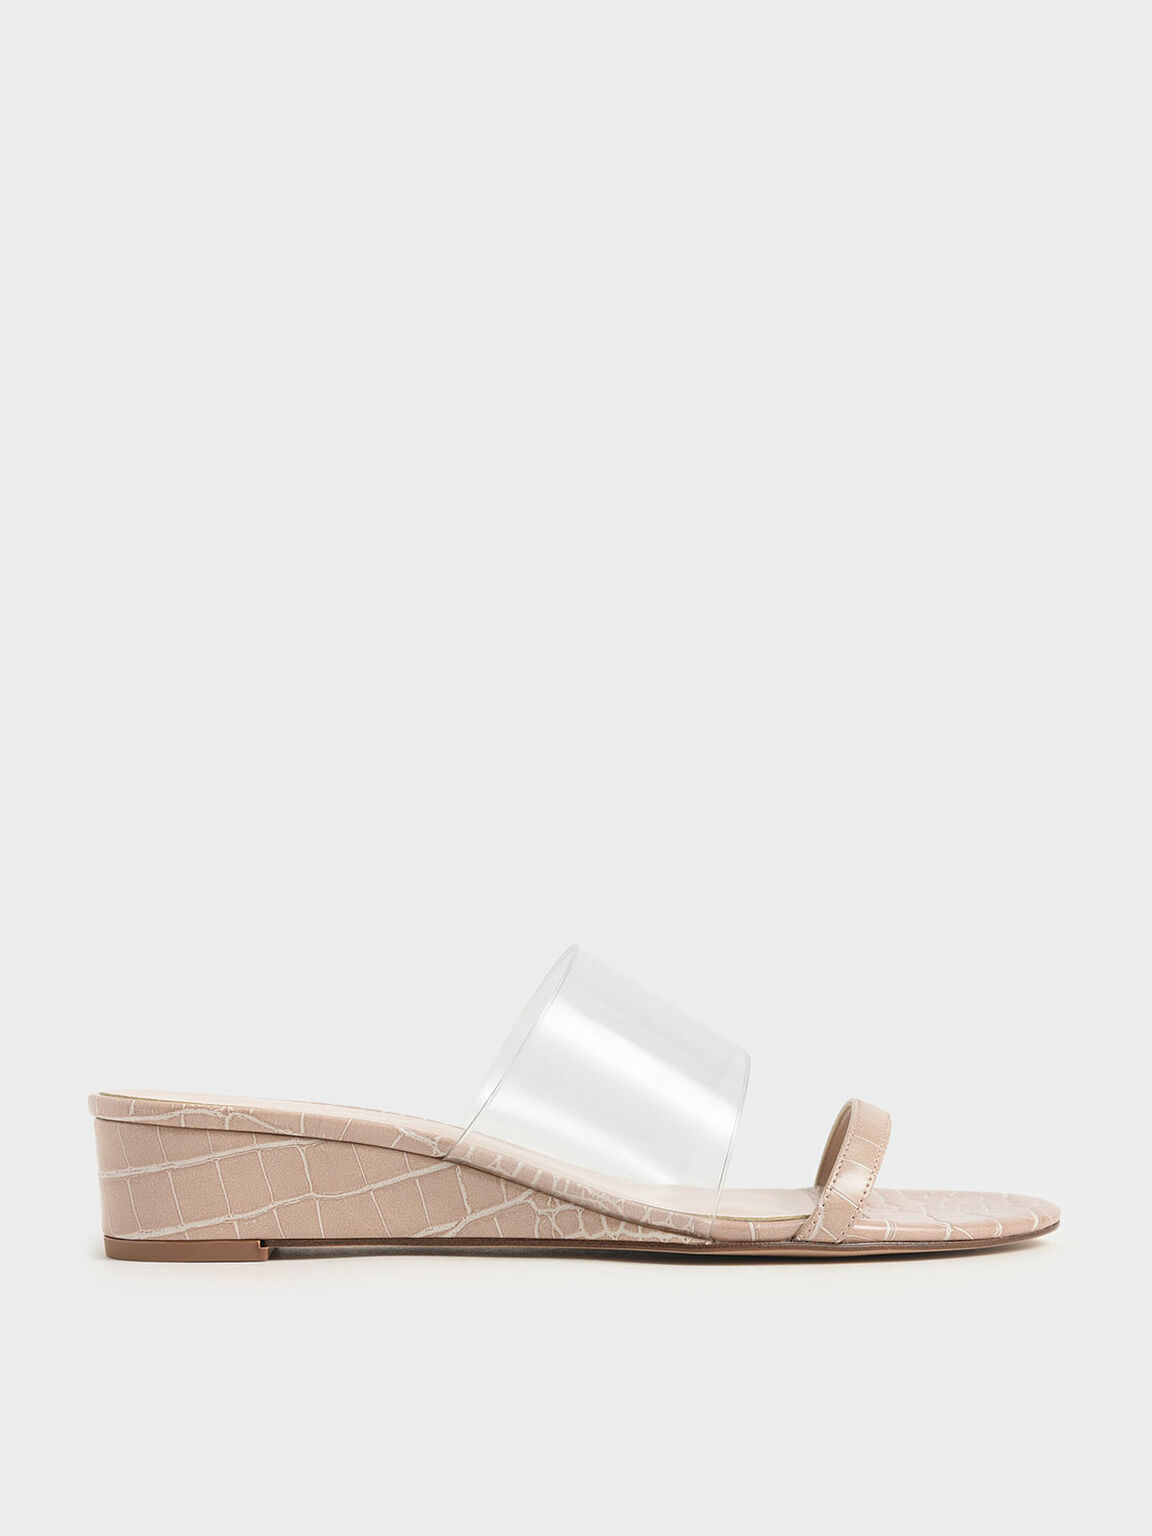 Croc-Effect Low Wedges, Nude, hi-res